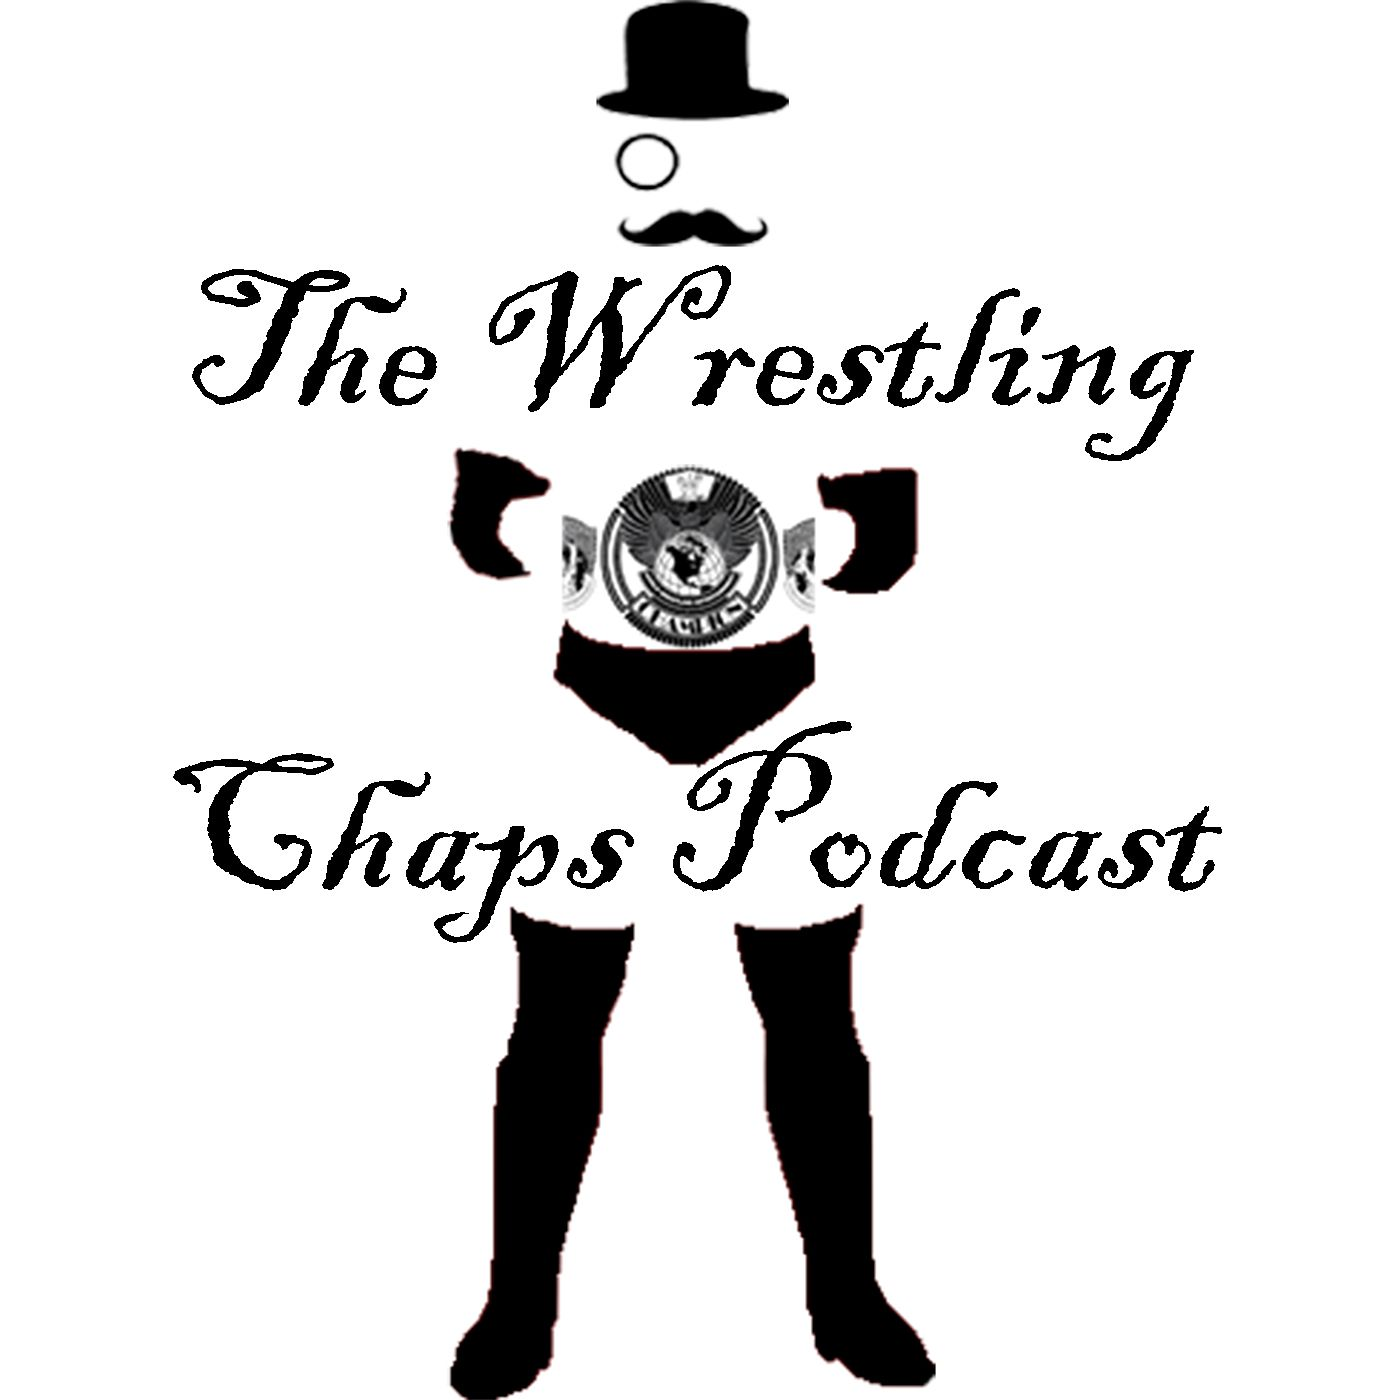 Wrestling Chaps Podcast